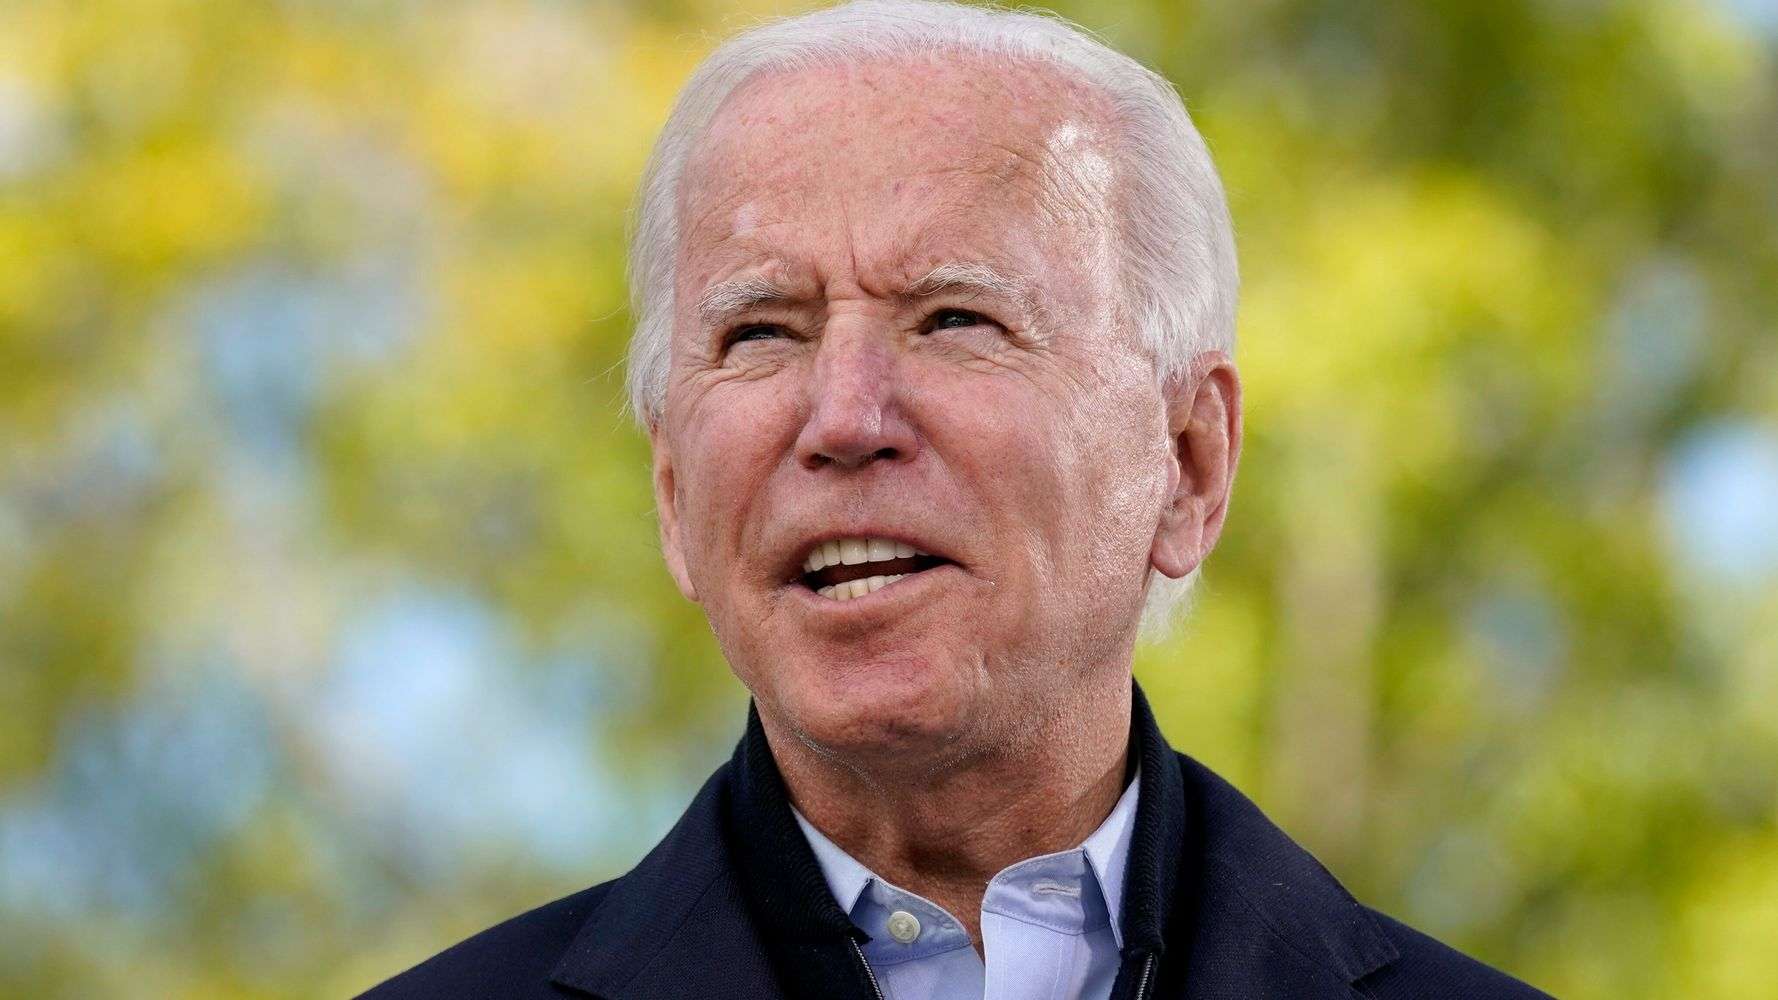 Joe Biden Unveils Powerful New Ad Featuring One Of America's Most Iconic Voices